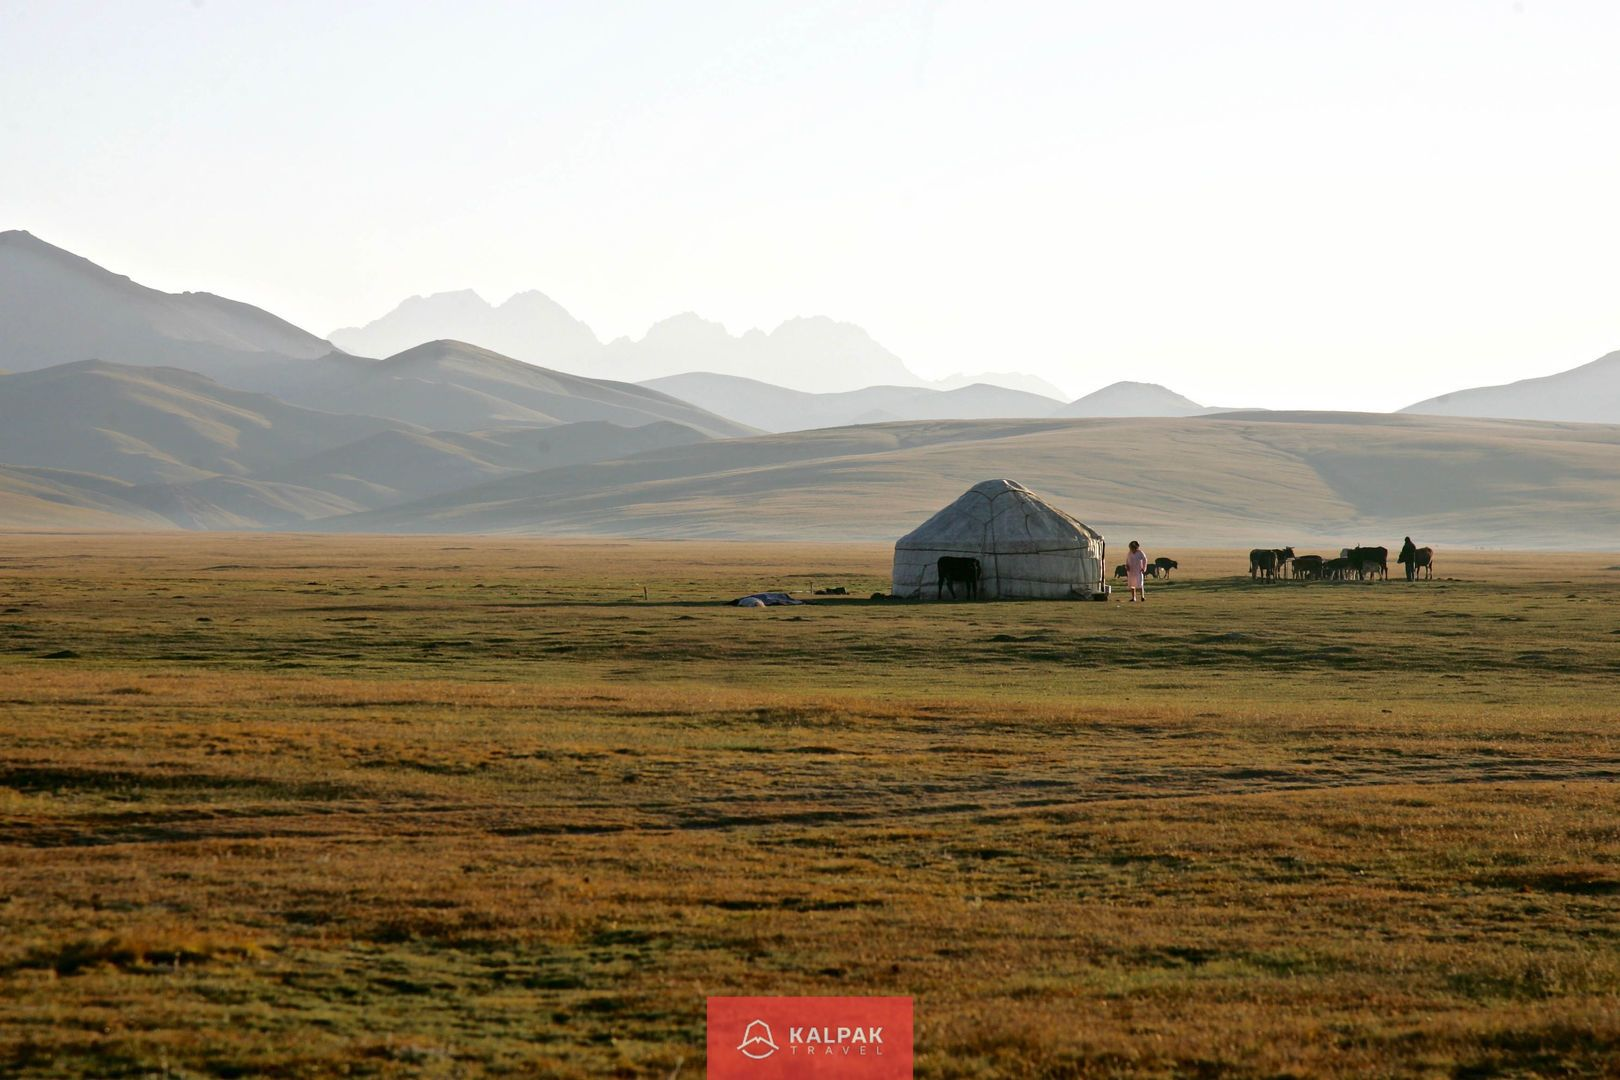 Central Asia with yurts